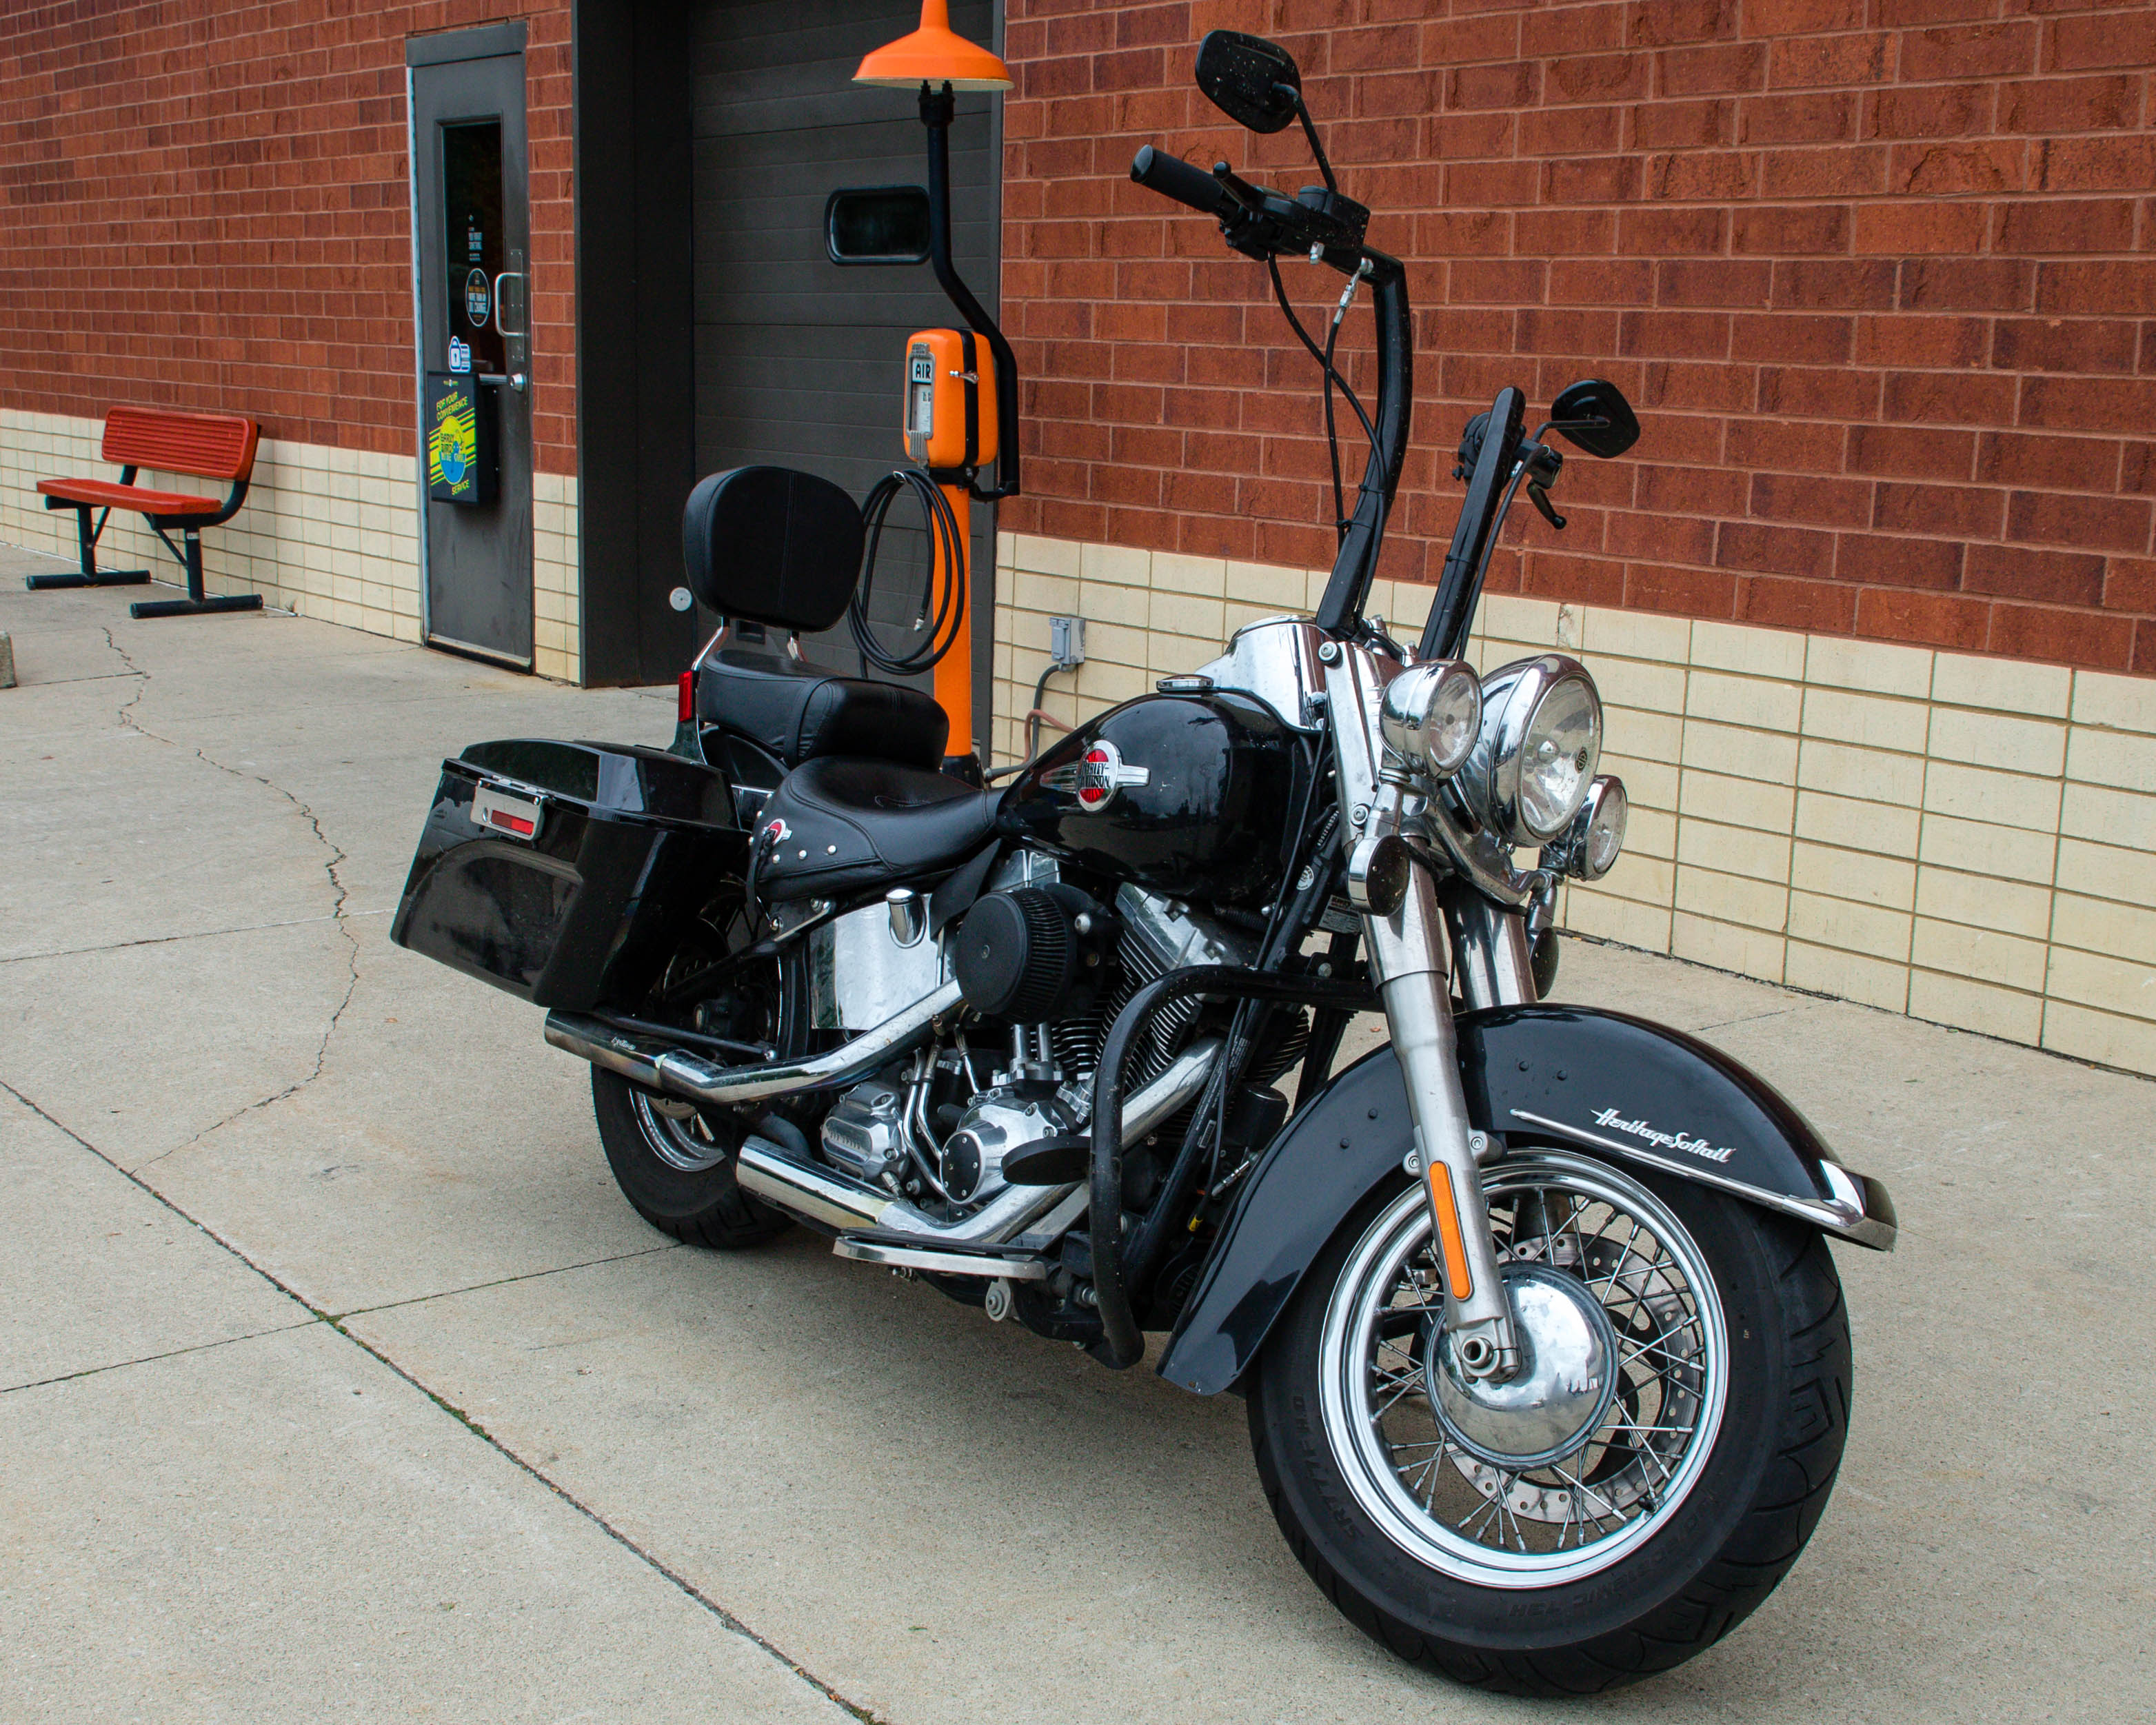 Pre-Owned 2016 Harley-Davidson Heritage Softail Classic